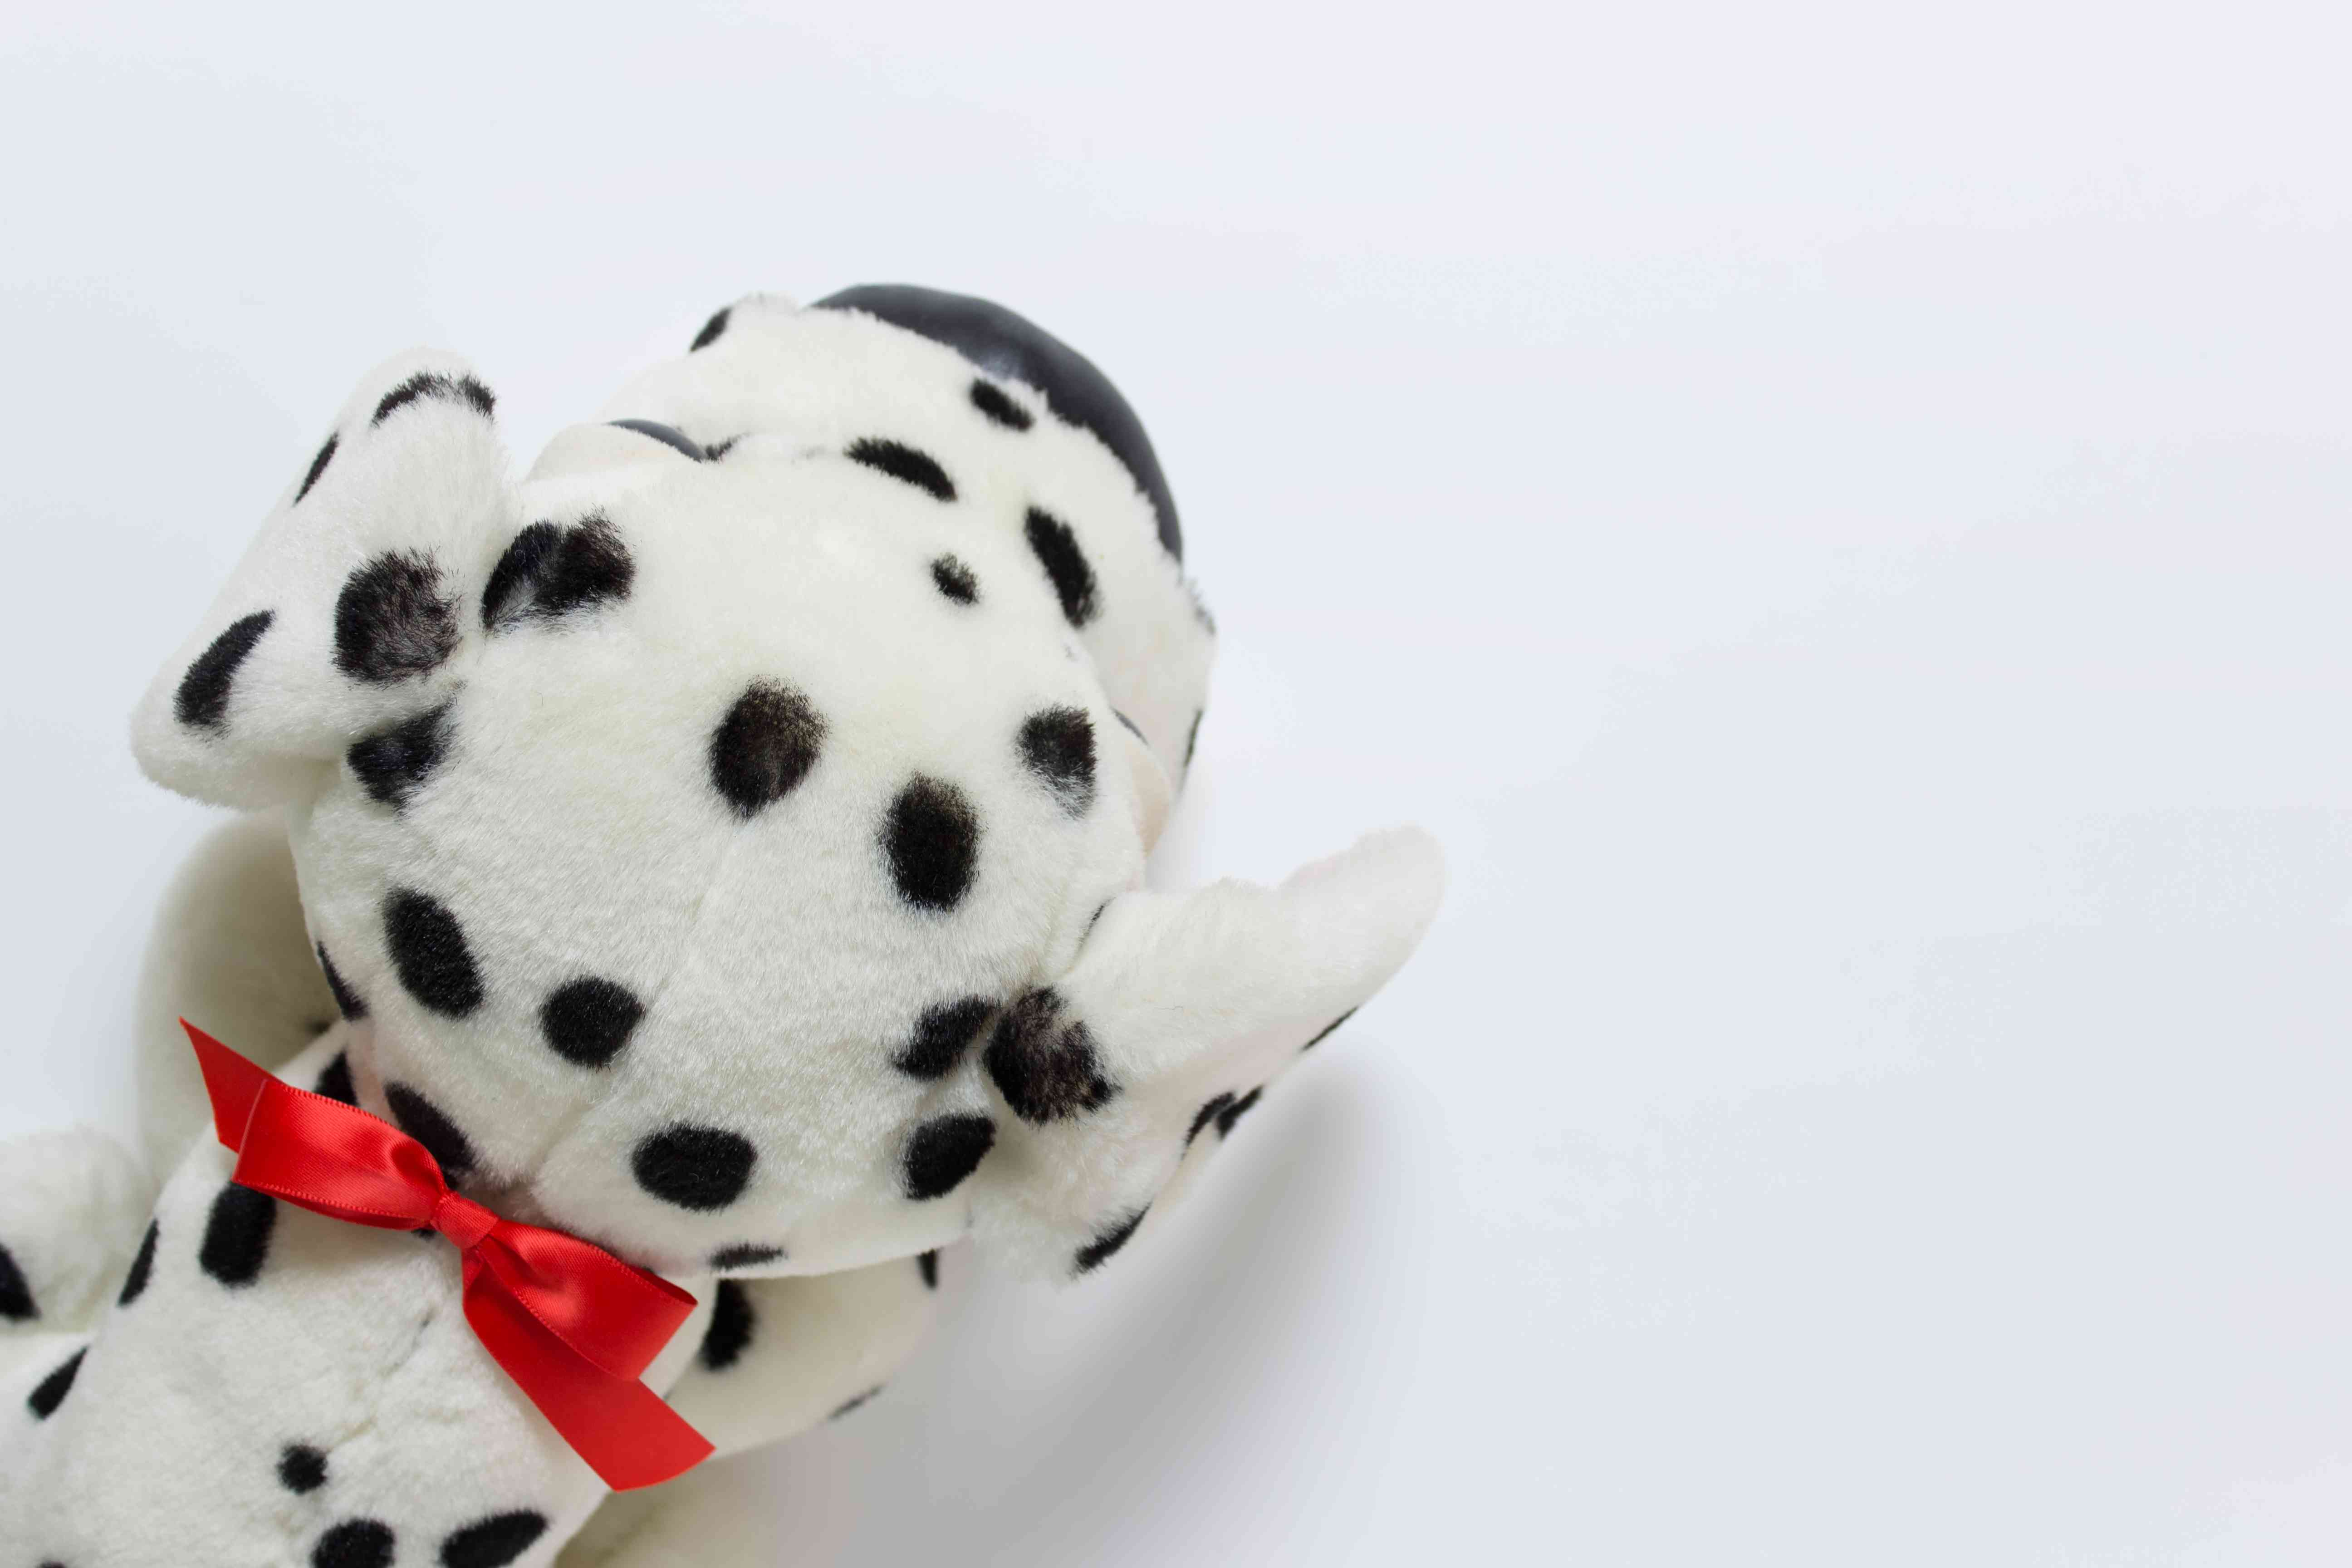 Little toy dog for present on white background